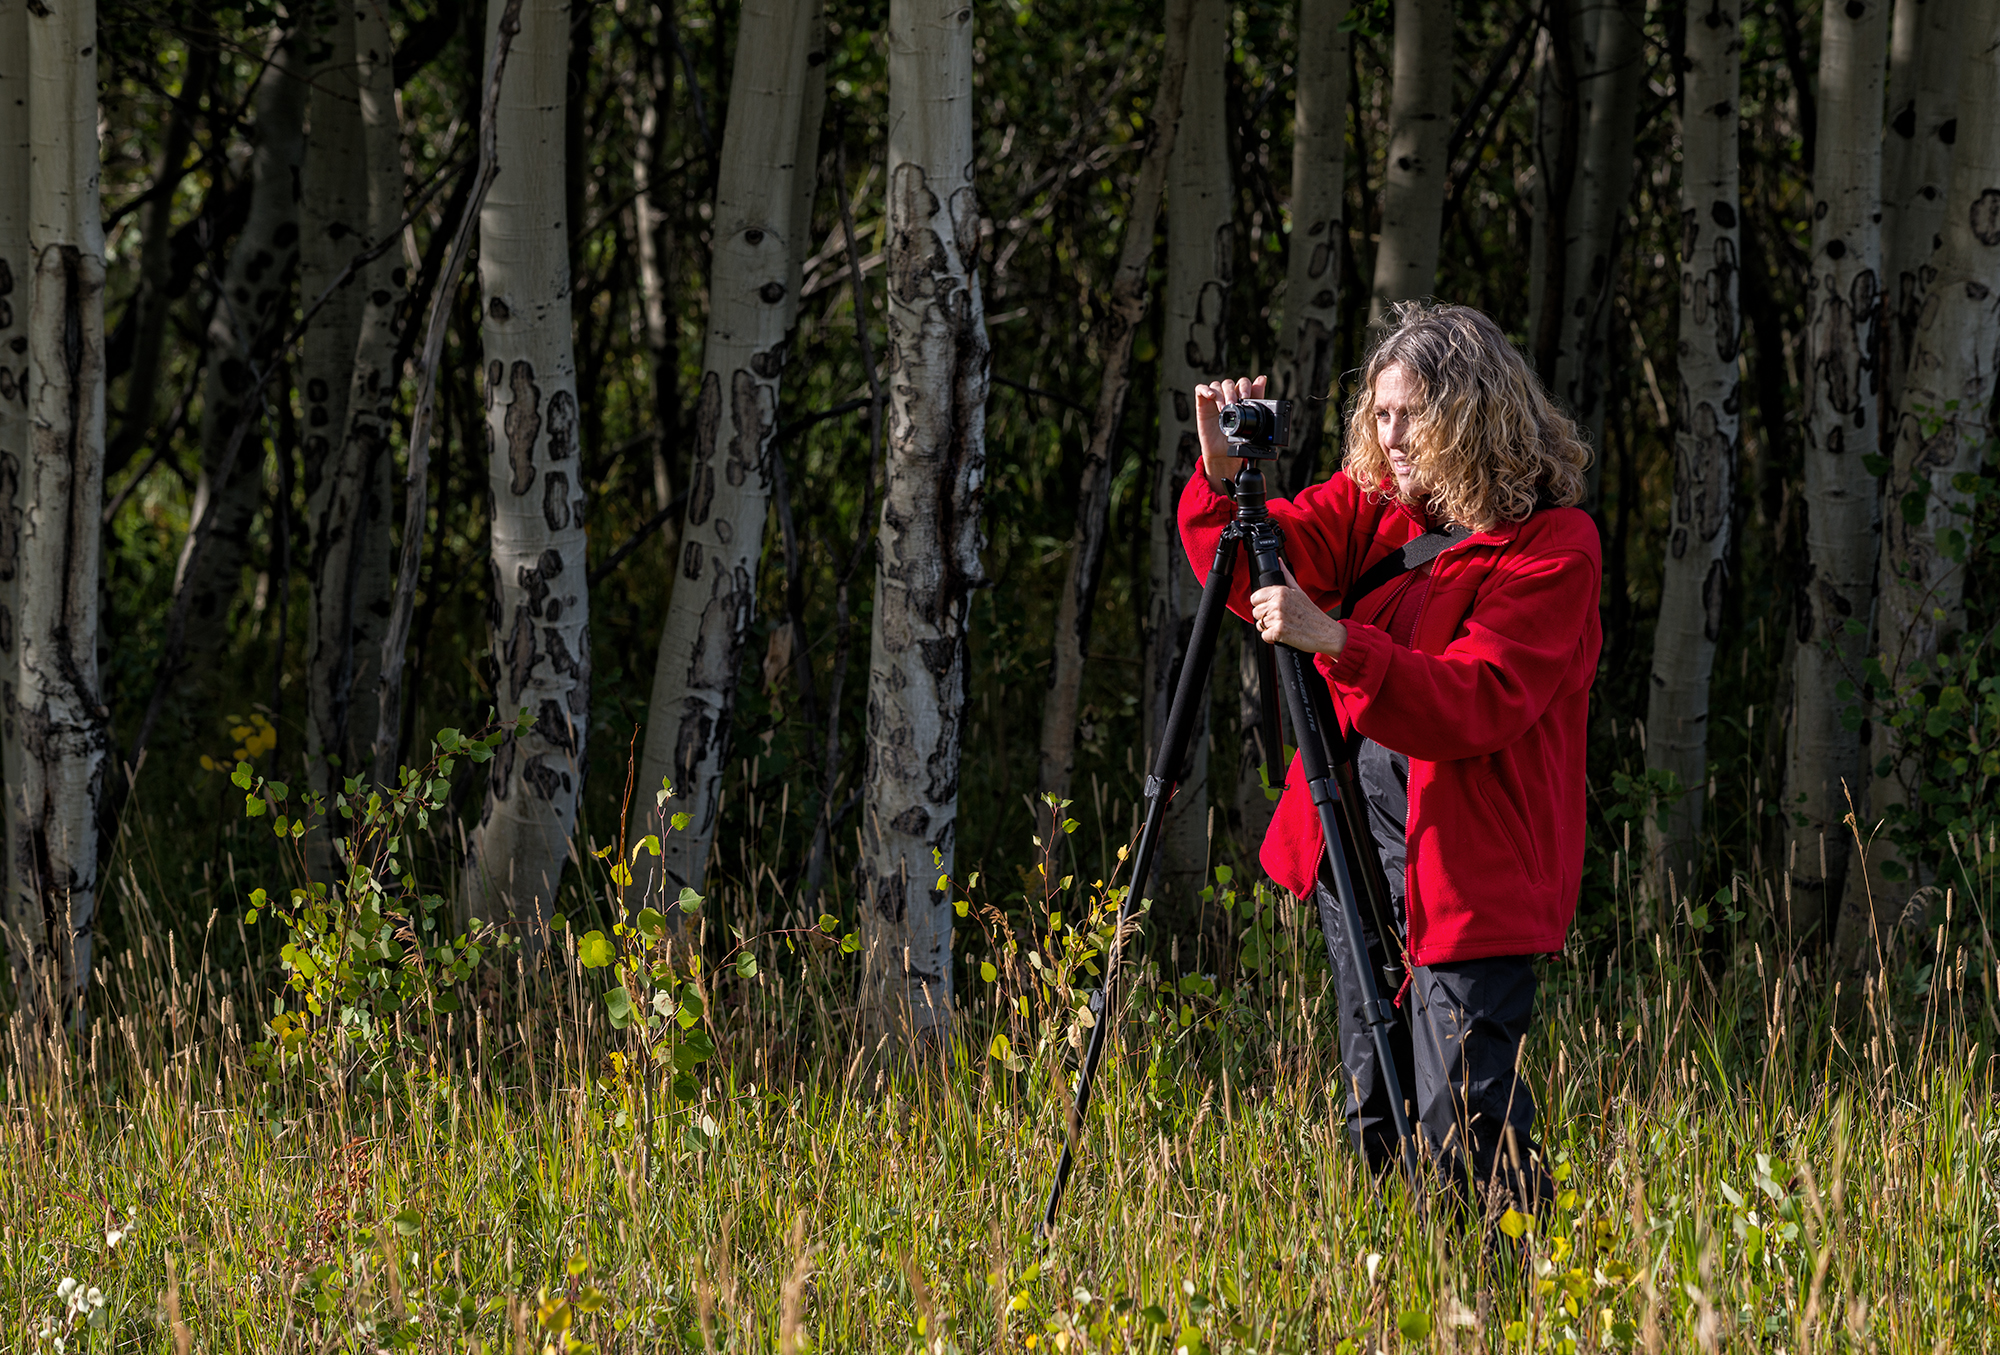 The Photographer in Red. Caribou Ranch Open Space, Colorado, 2016